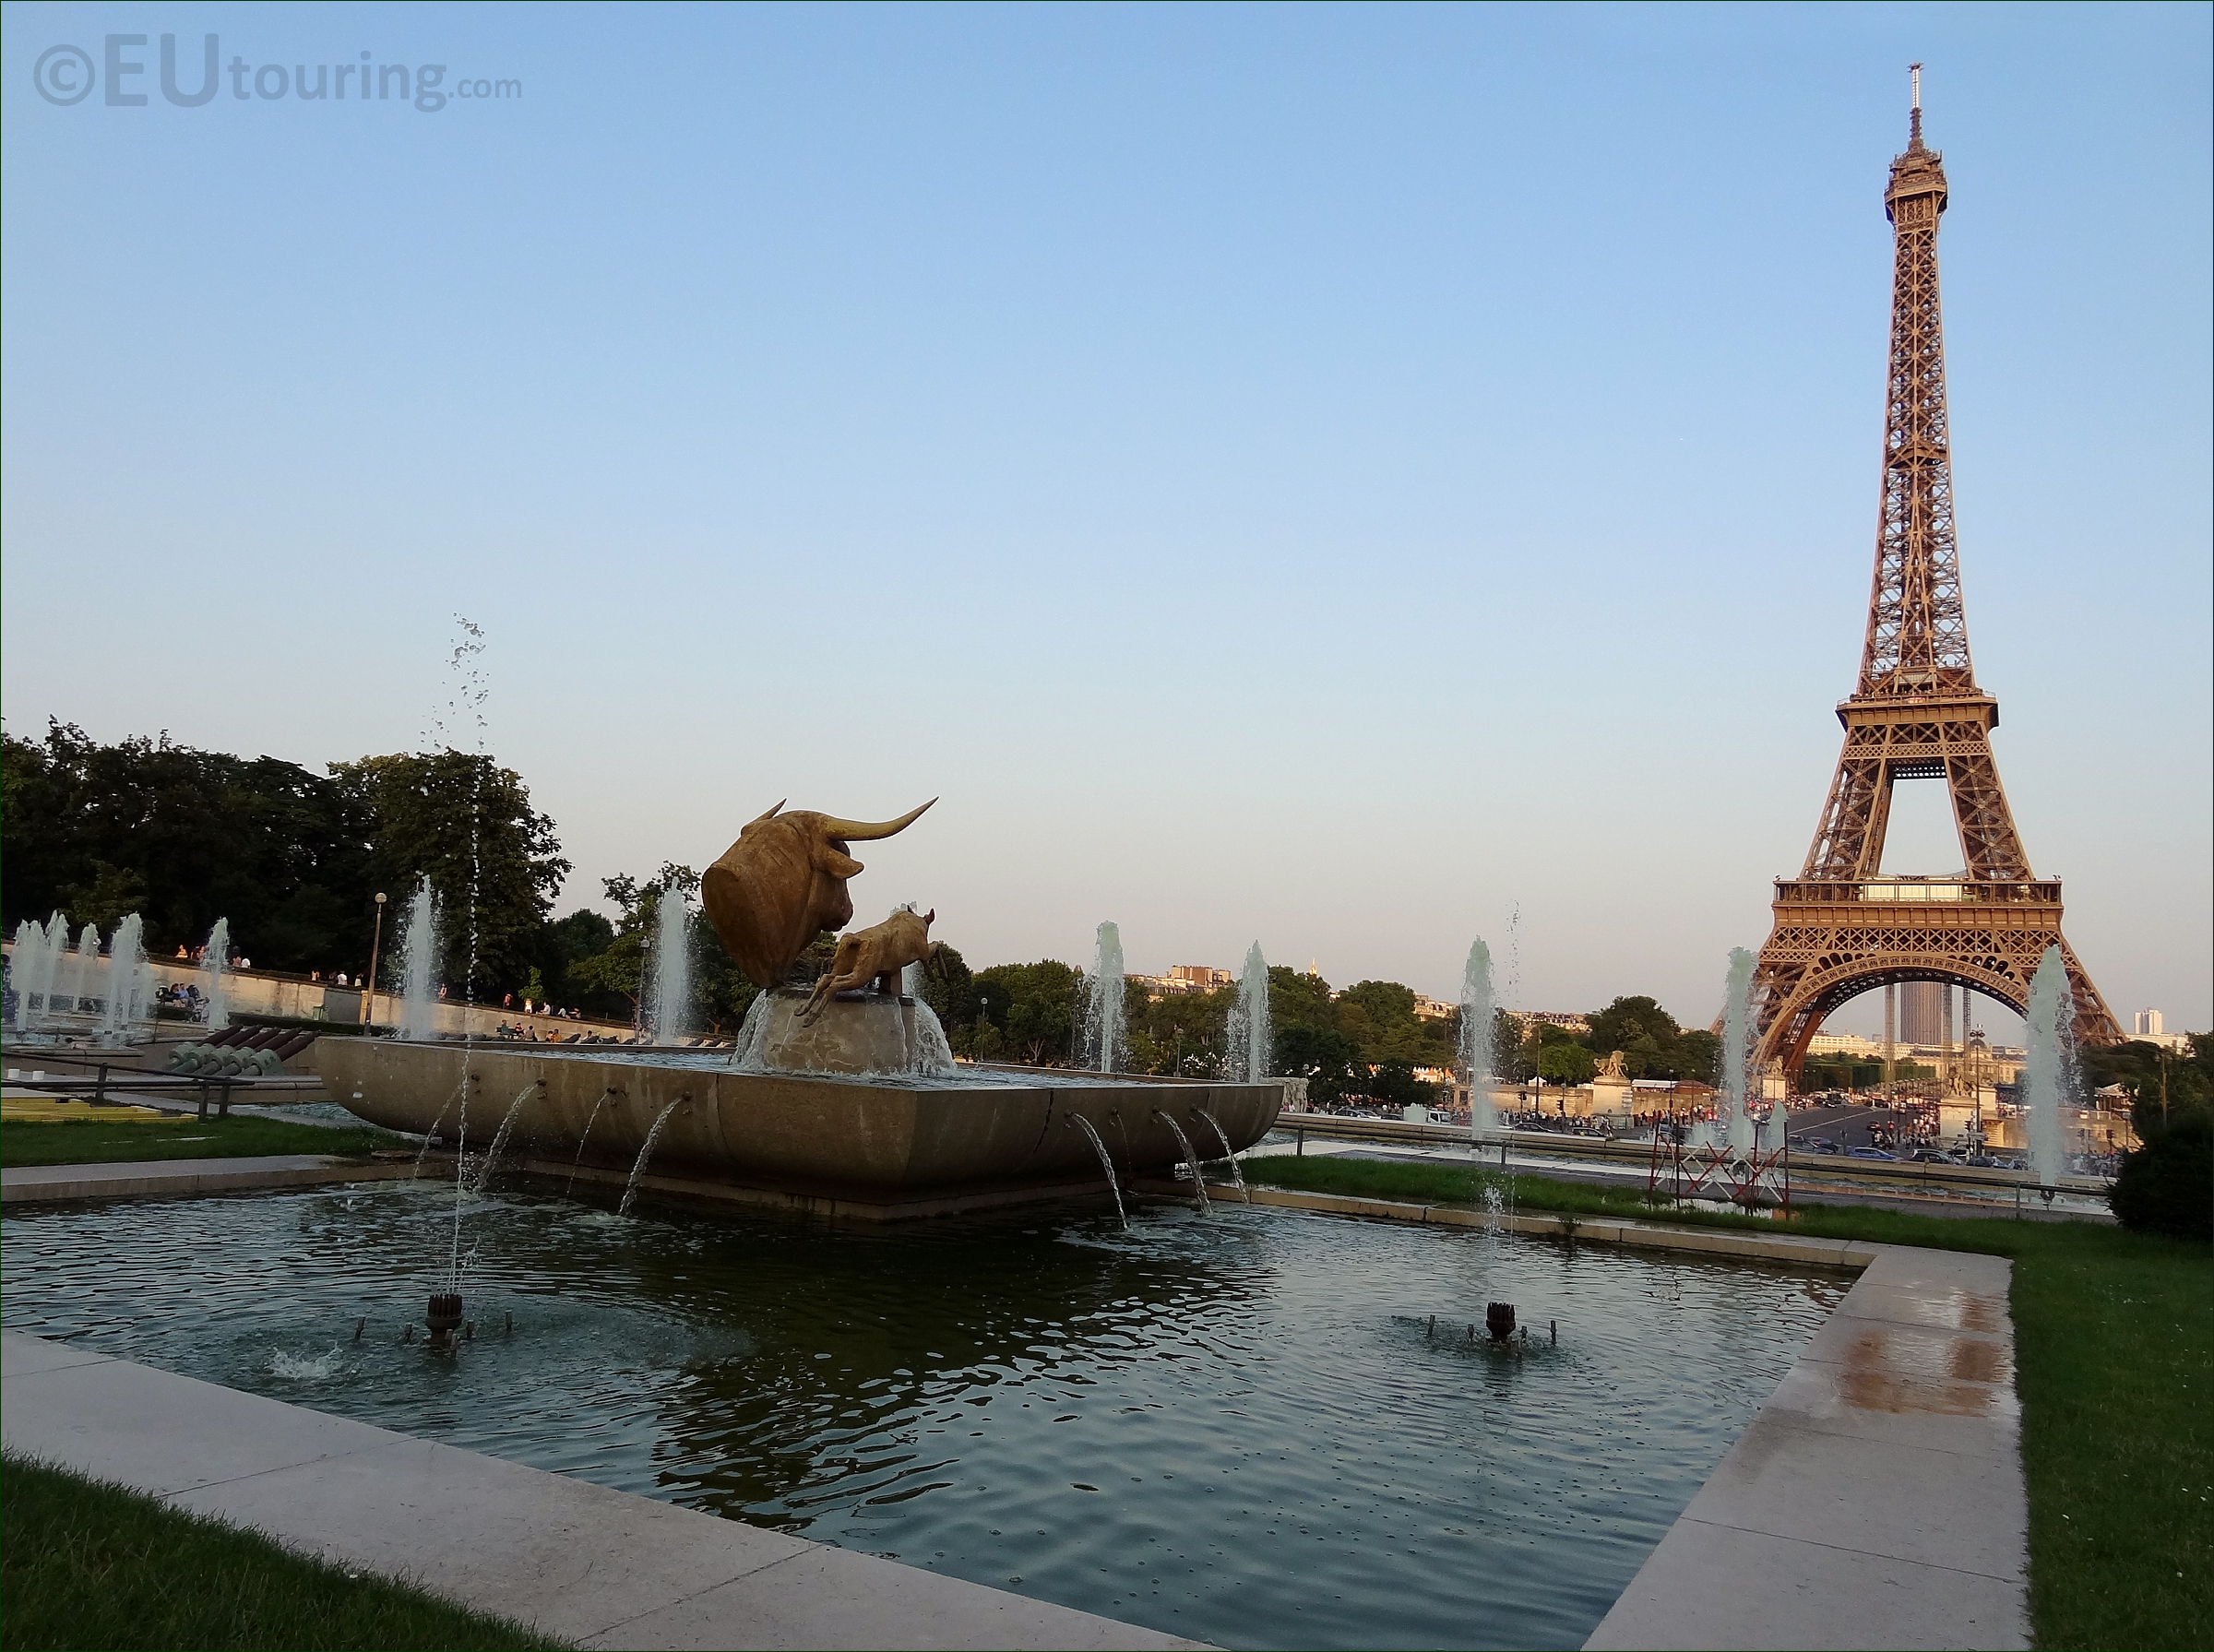 From Bull statue to the Eiffel Tower